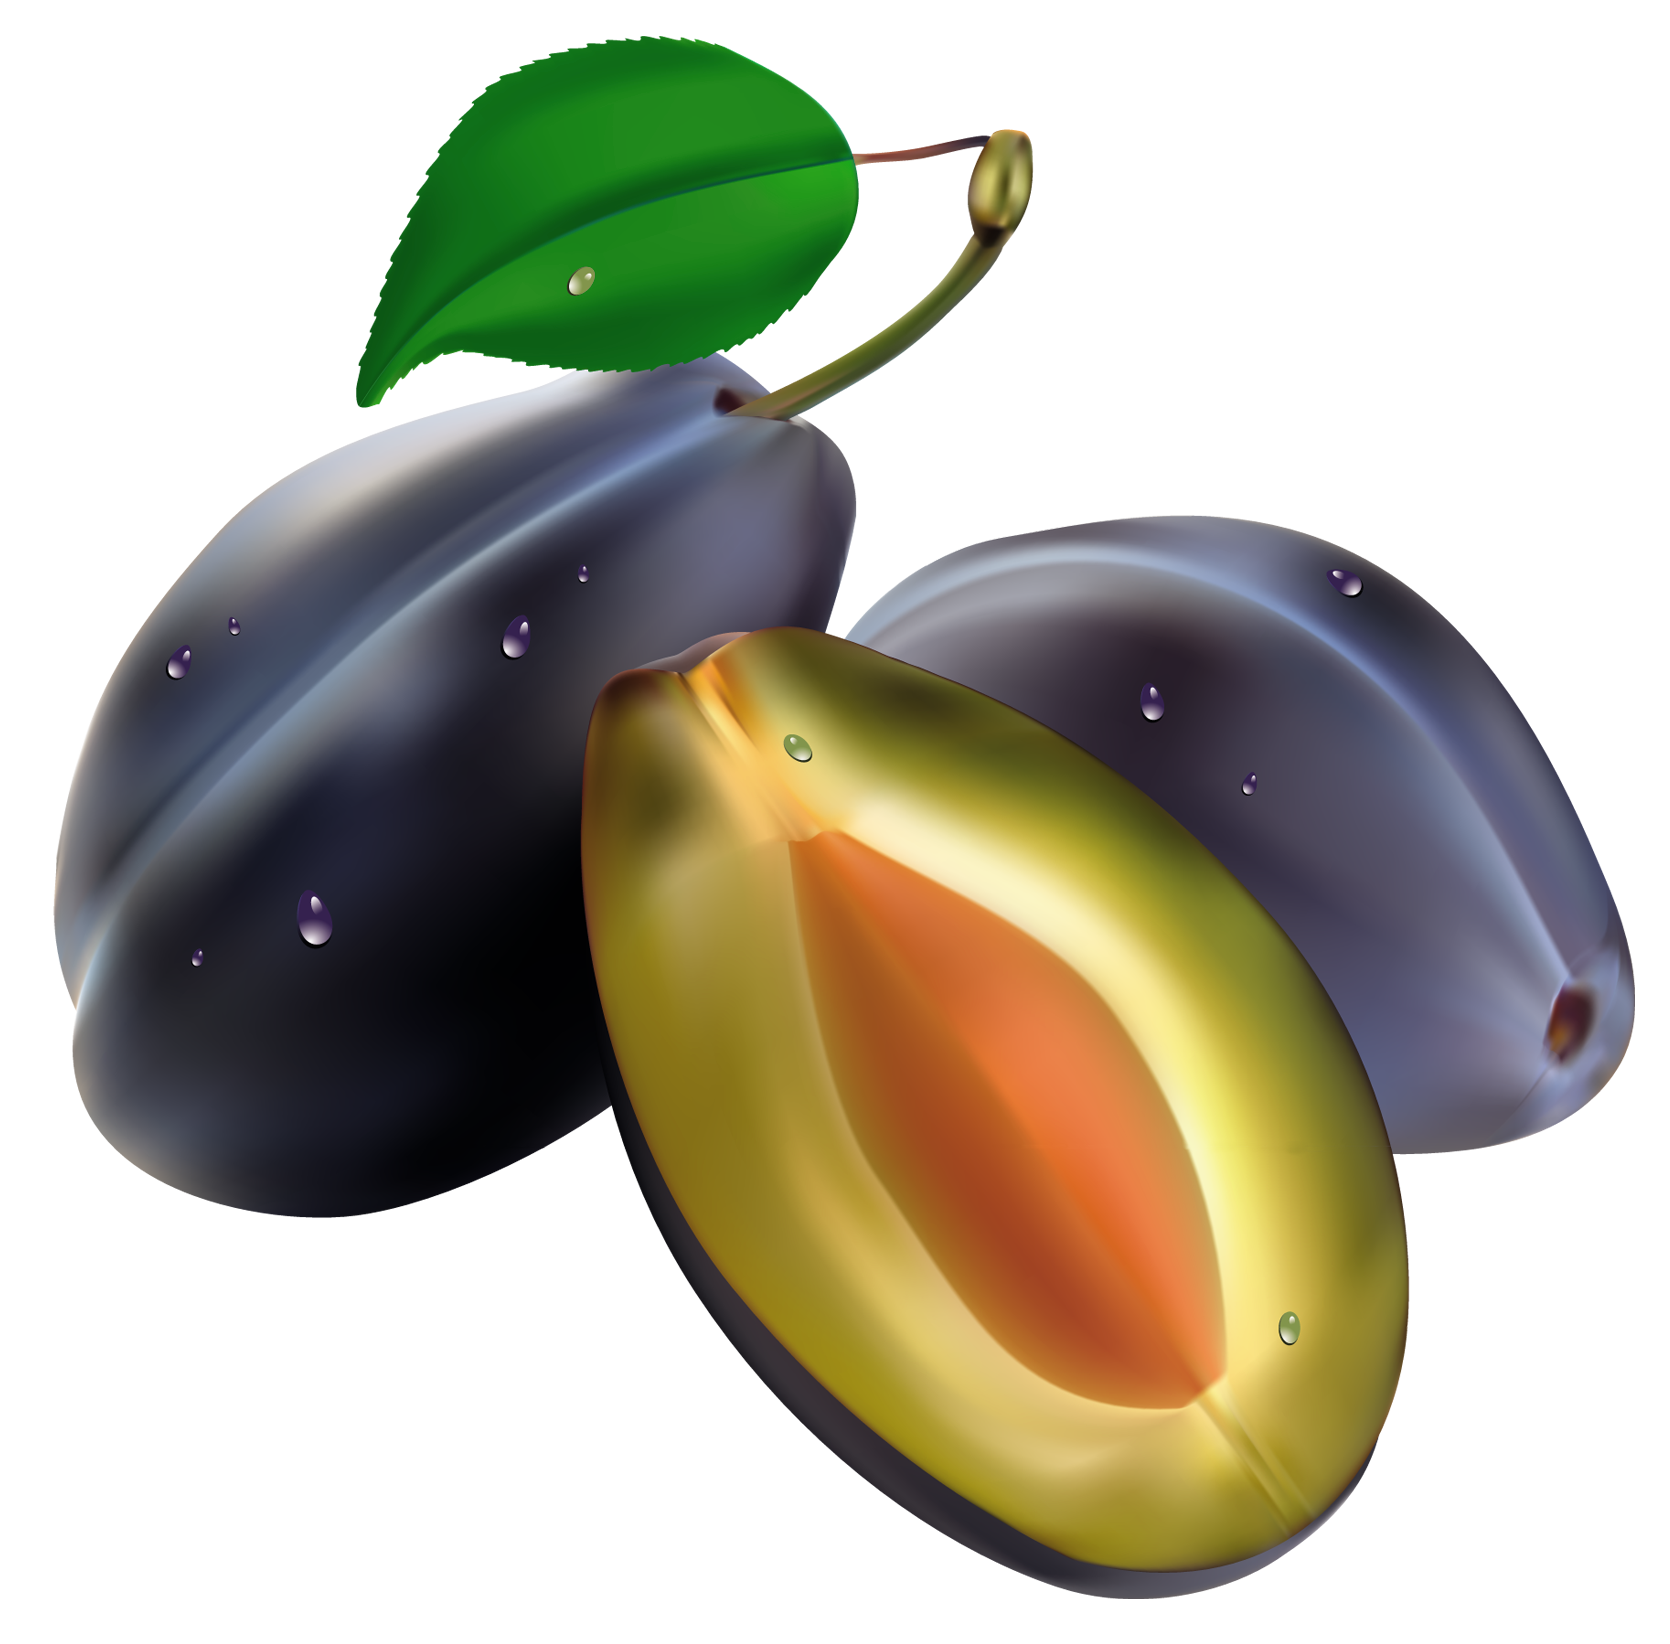 Pomegranate clipart summer. Plums png picture food